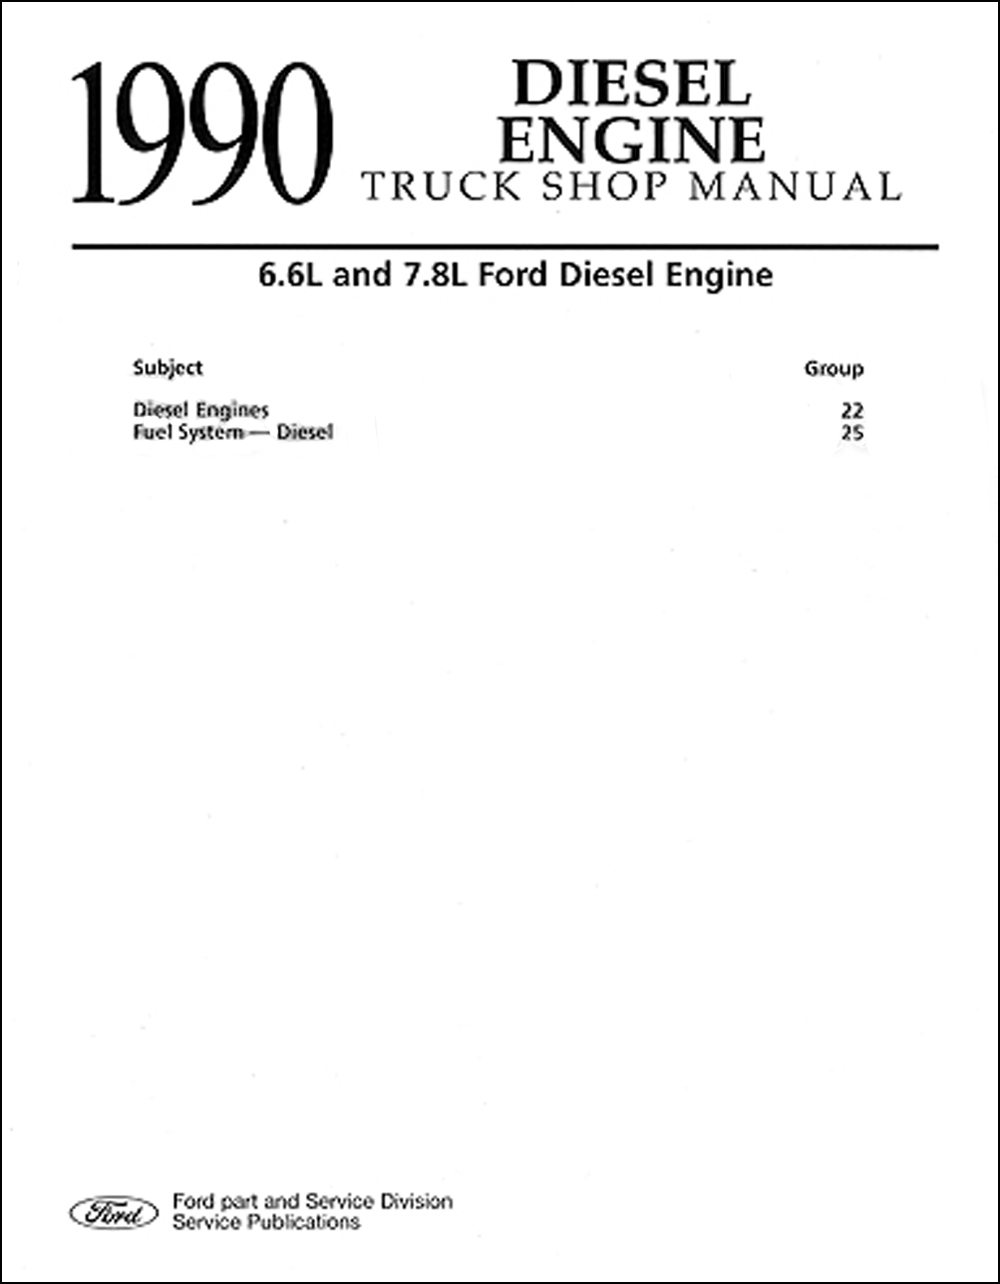 hight resolution of 1990 ford truck 6 6 and 7 8 diesel engine repair shop manual 259 00